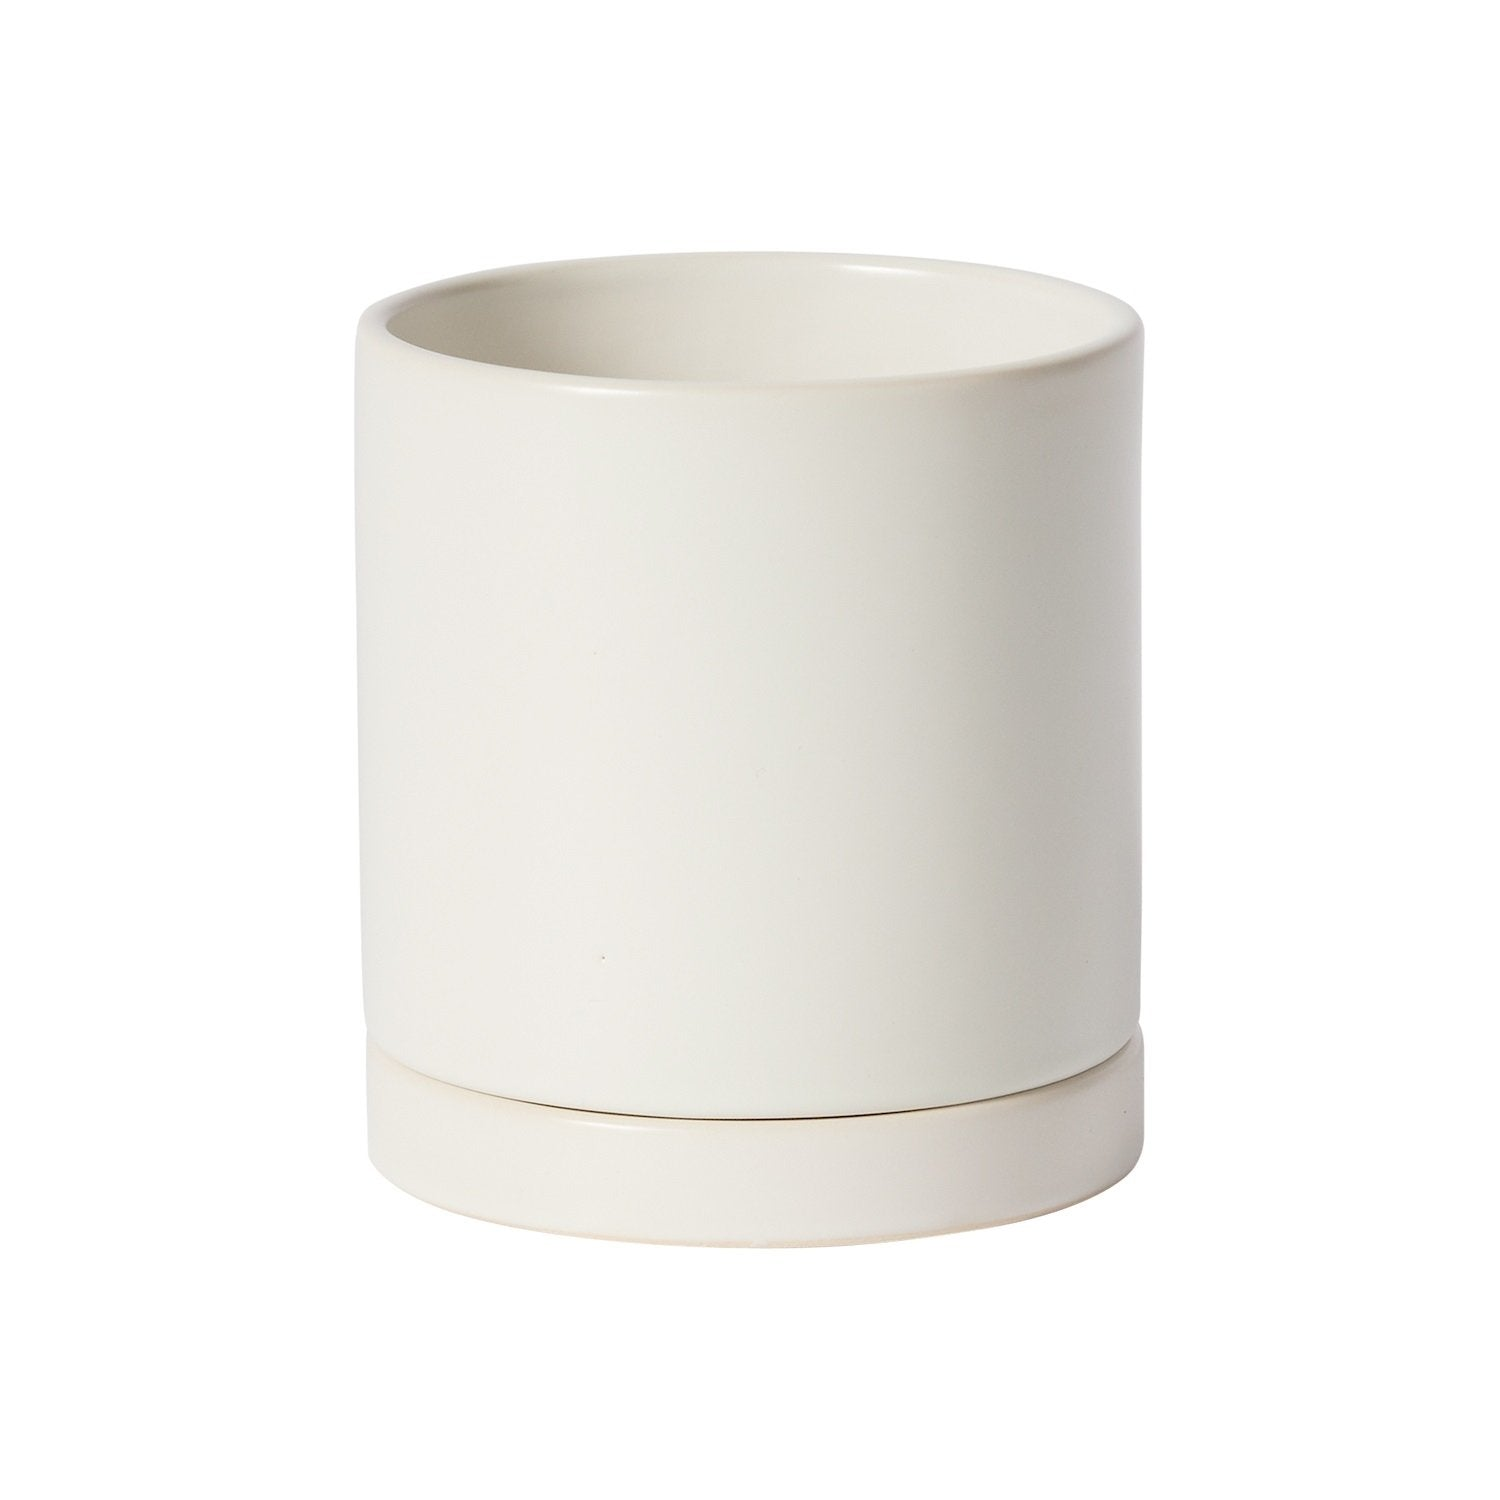 "Small 4.25"" Romey Pot Planter Accent Decor White"